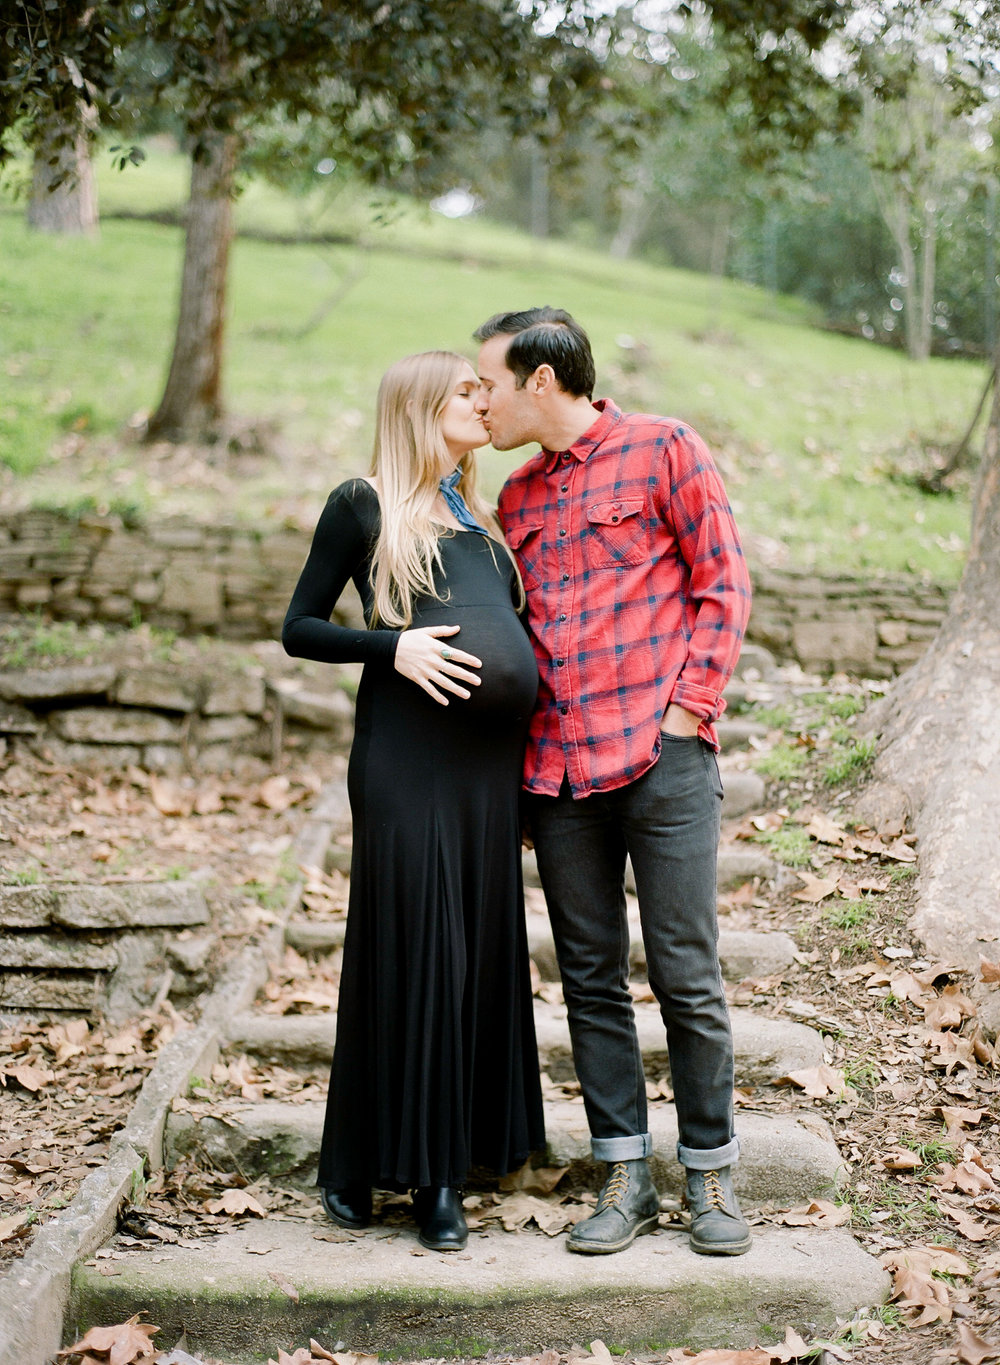 Chrissy & David Maternity Session-38.jpg